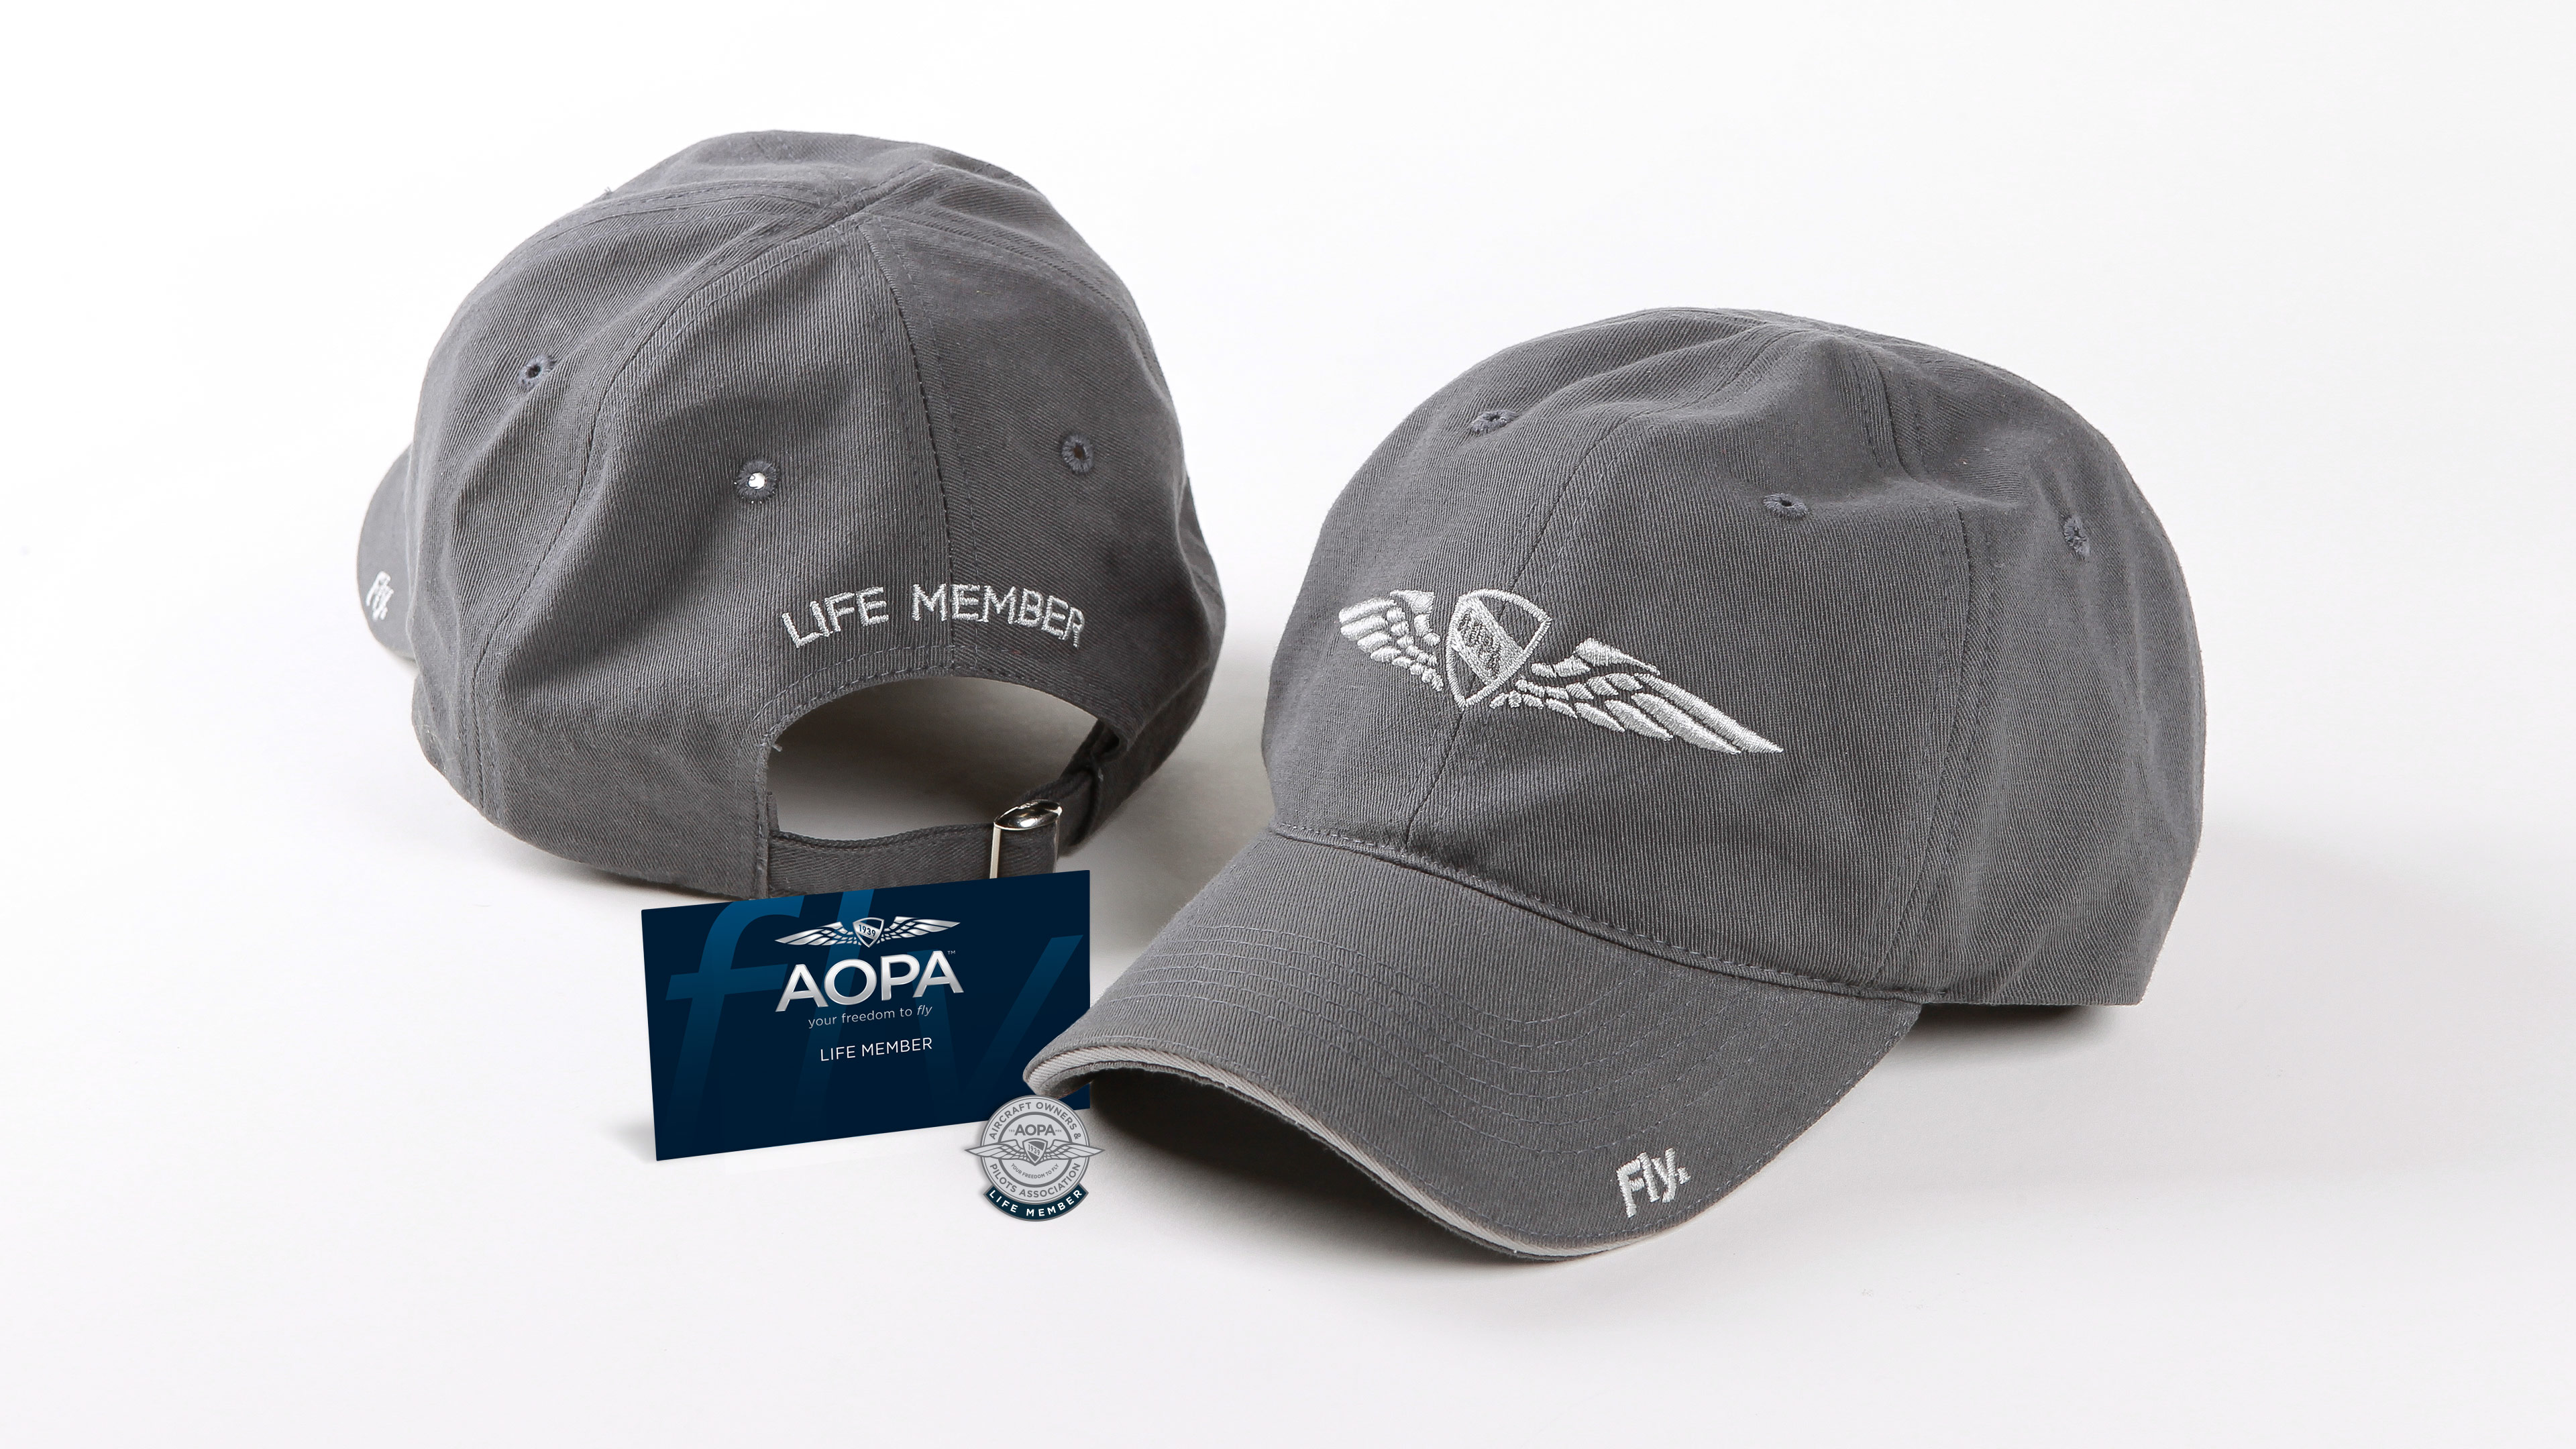 AOPA Life Membership Hat and Card